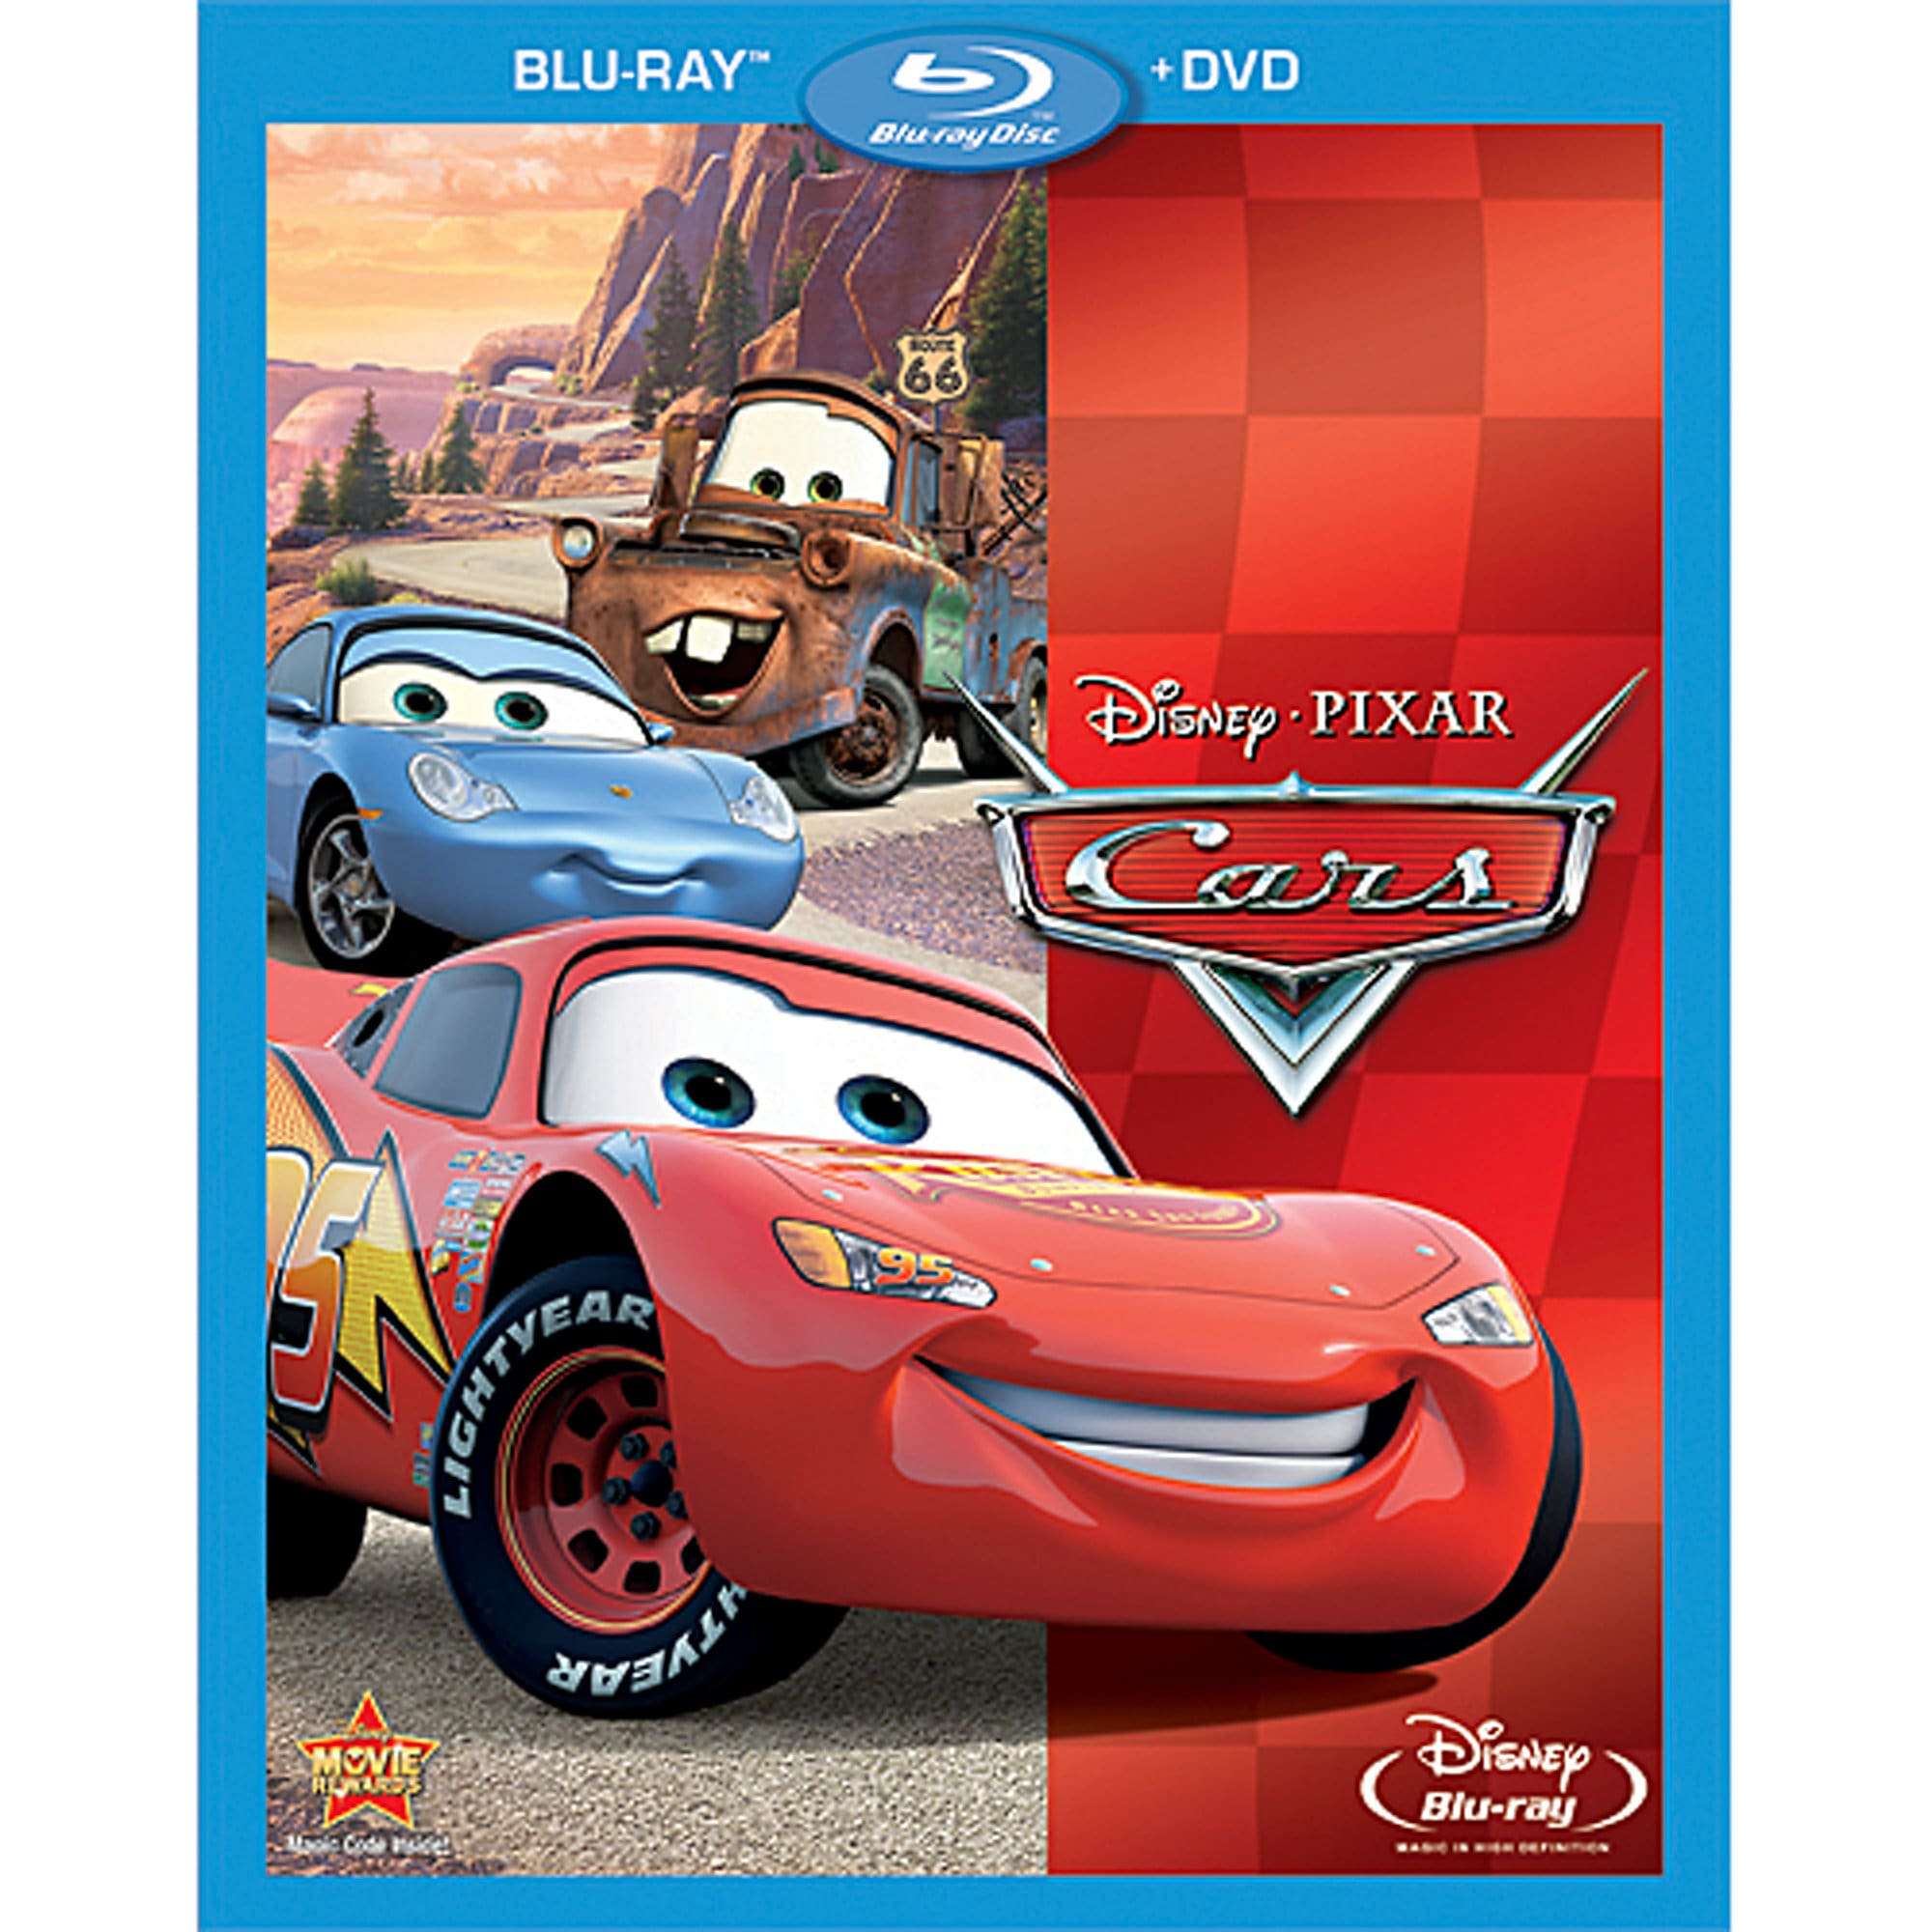 Cars Blu-ray and DVD Combo Pack